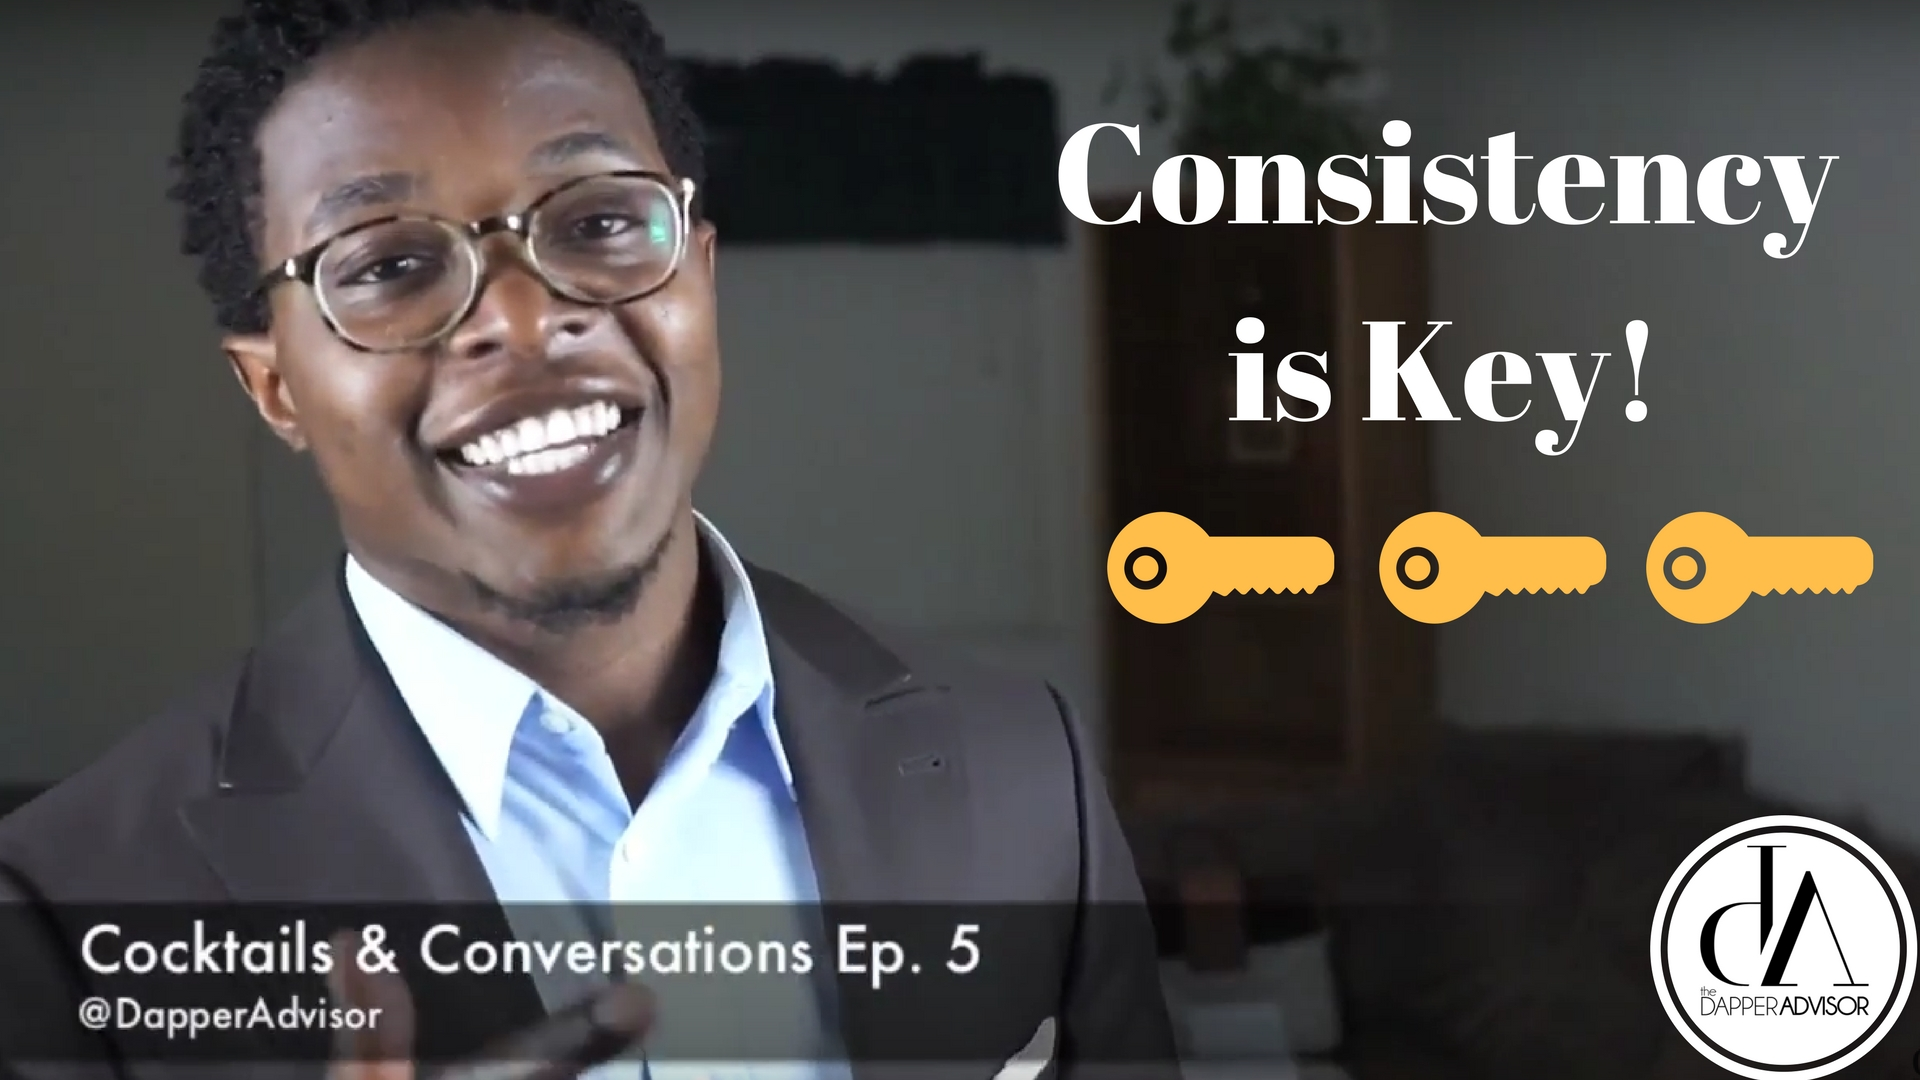 Cocktails & Conversations Ep.5: Consistency